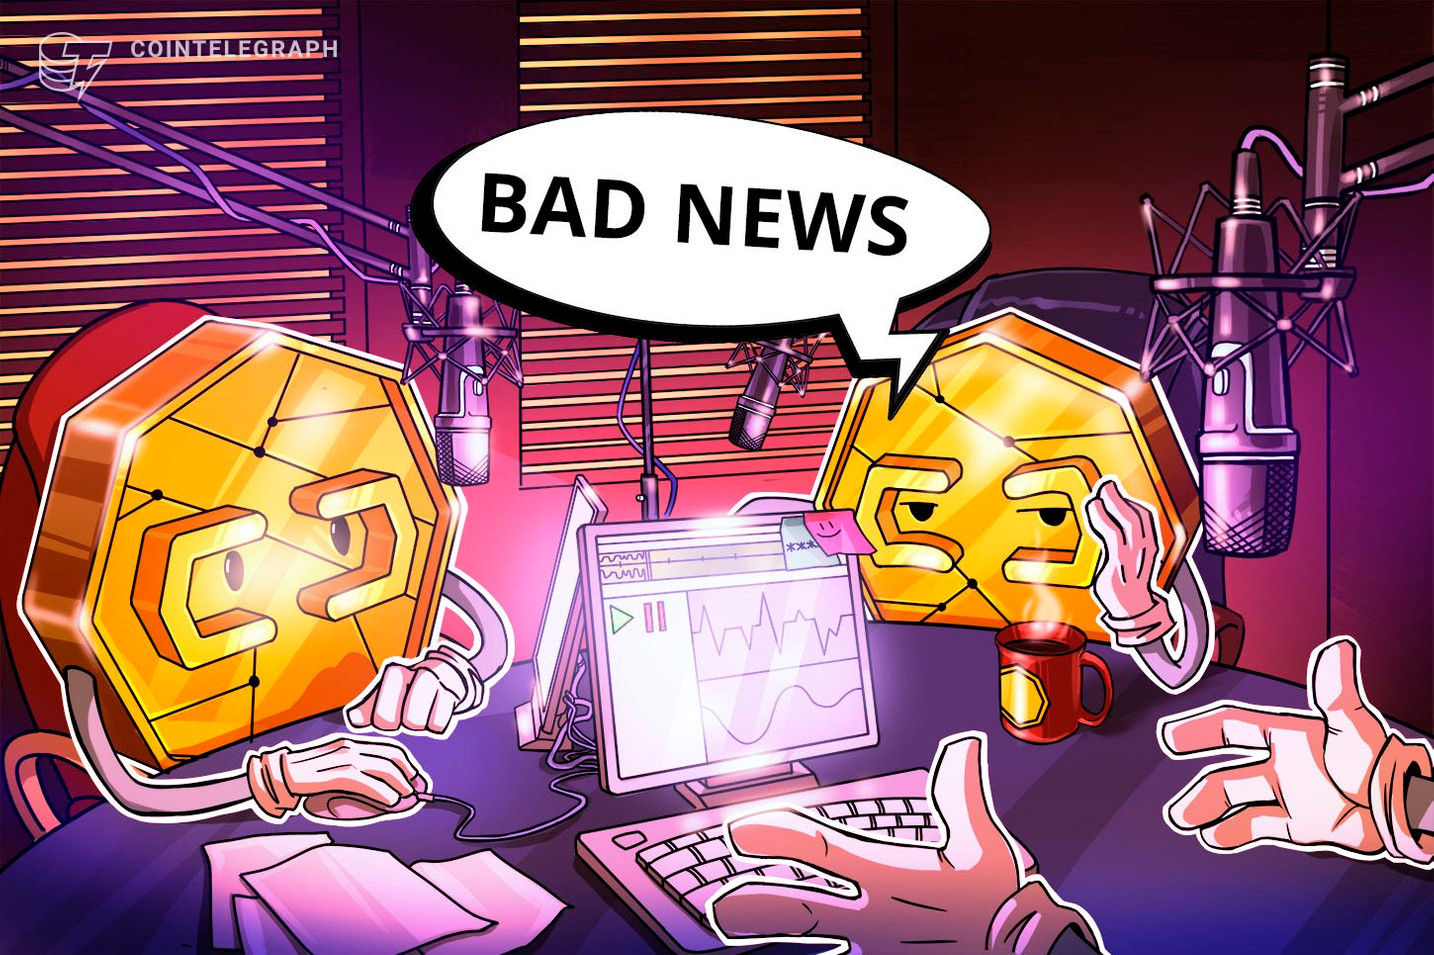 Amid election throes, Bitcoin goes: Bad Crypto news of the week